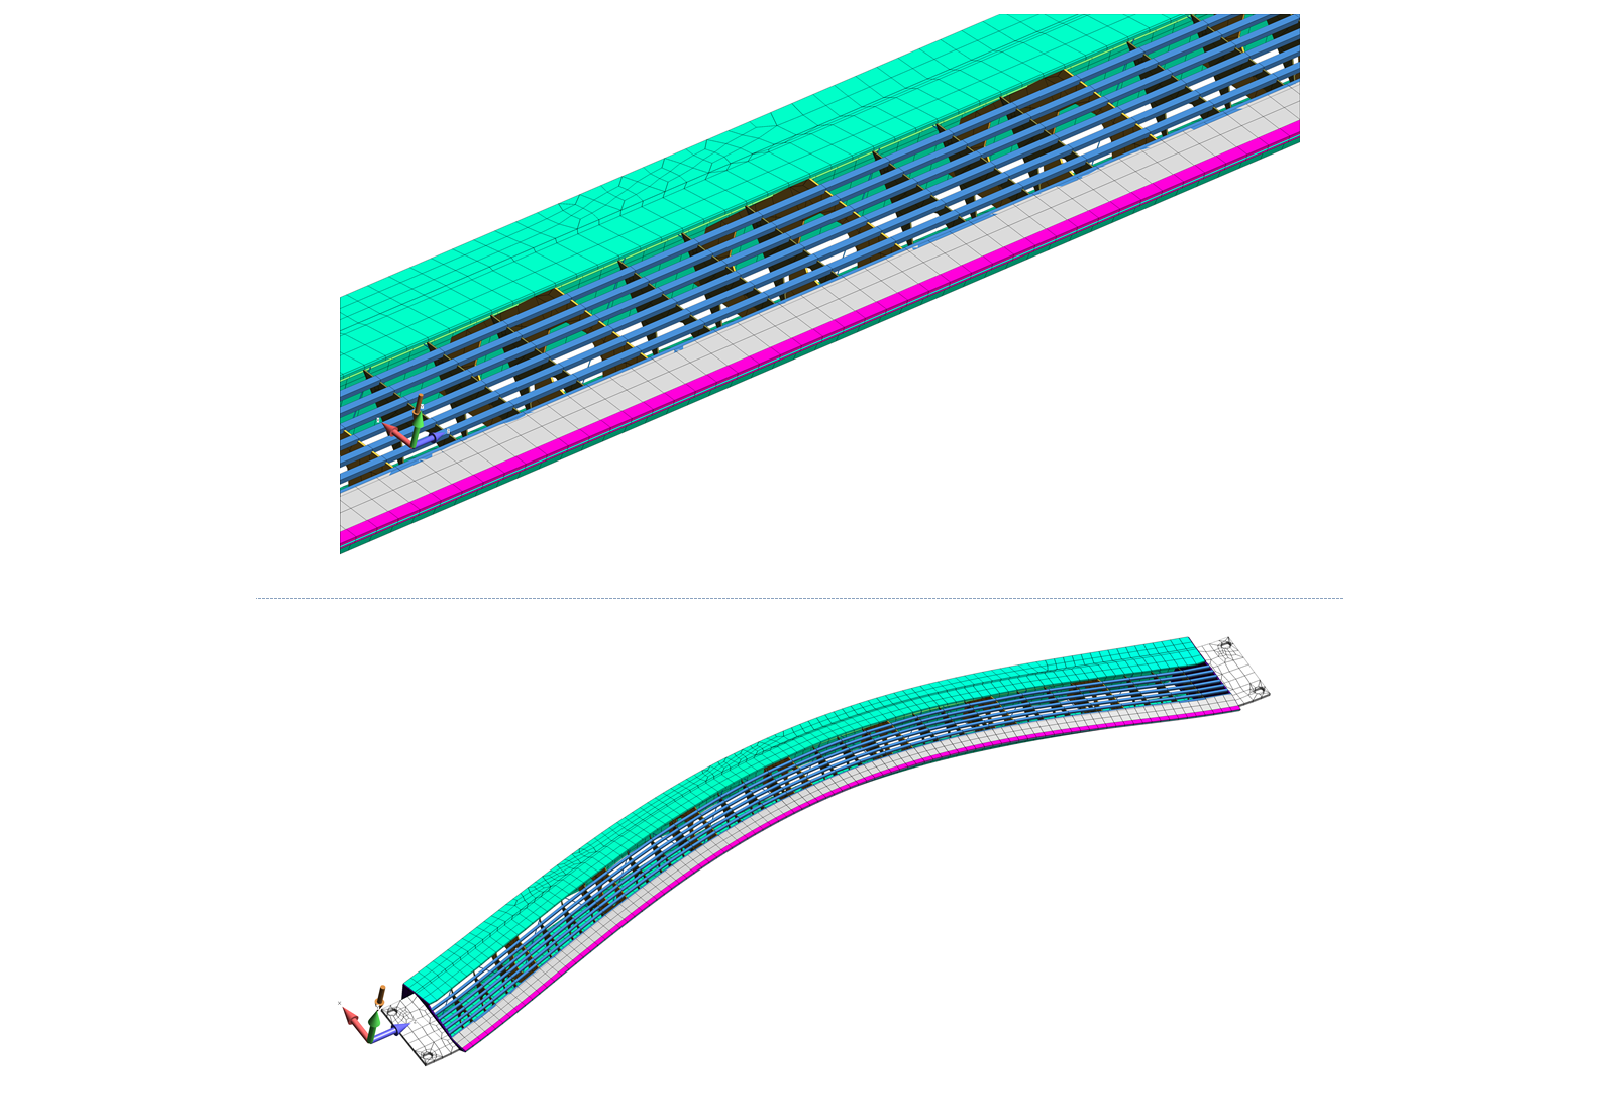 Figure 10: Normal modes analysis using NX Nastran of a paper mill forming board.  Optimization of the structure developed a design that was stiffer and lighter than any other structure on the marked.